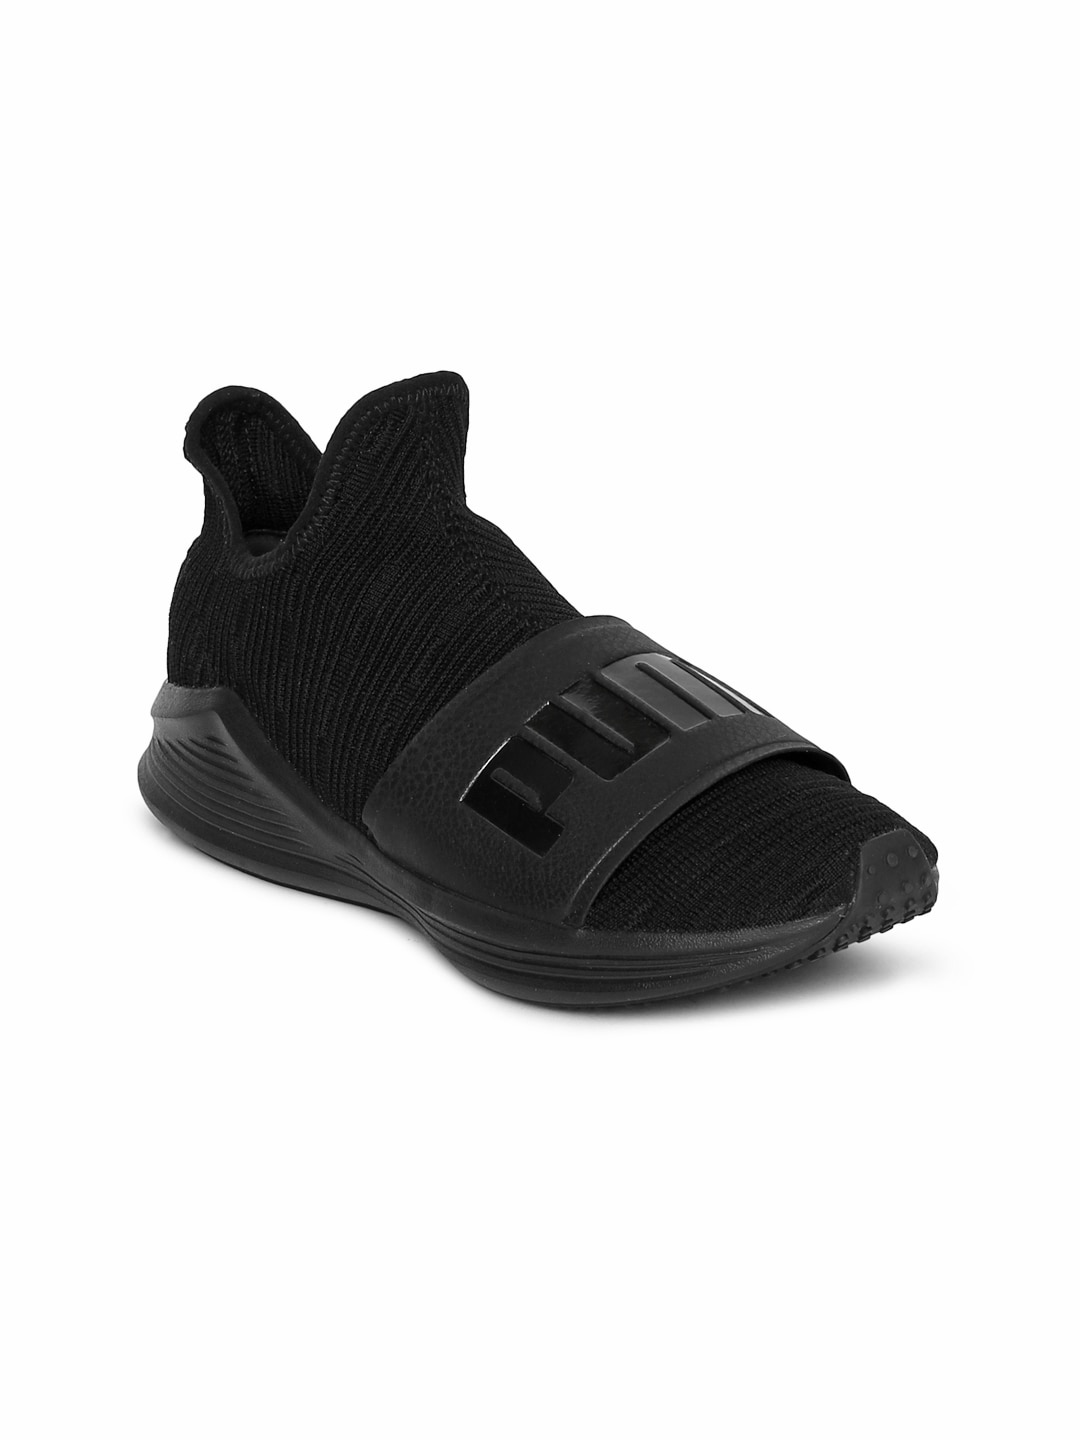 Slip Shoes Buy Women On Puma Black 2H9IDE